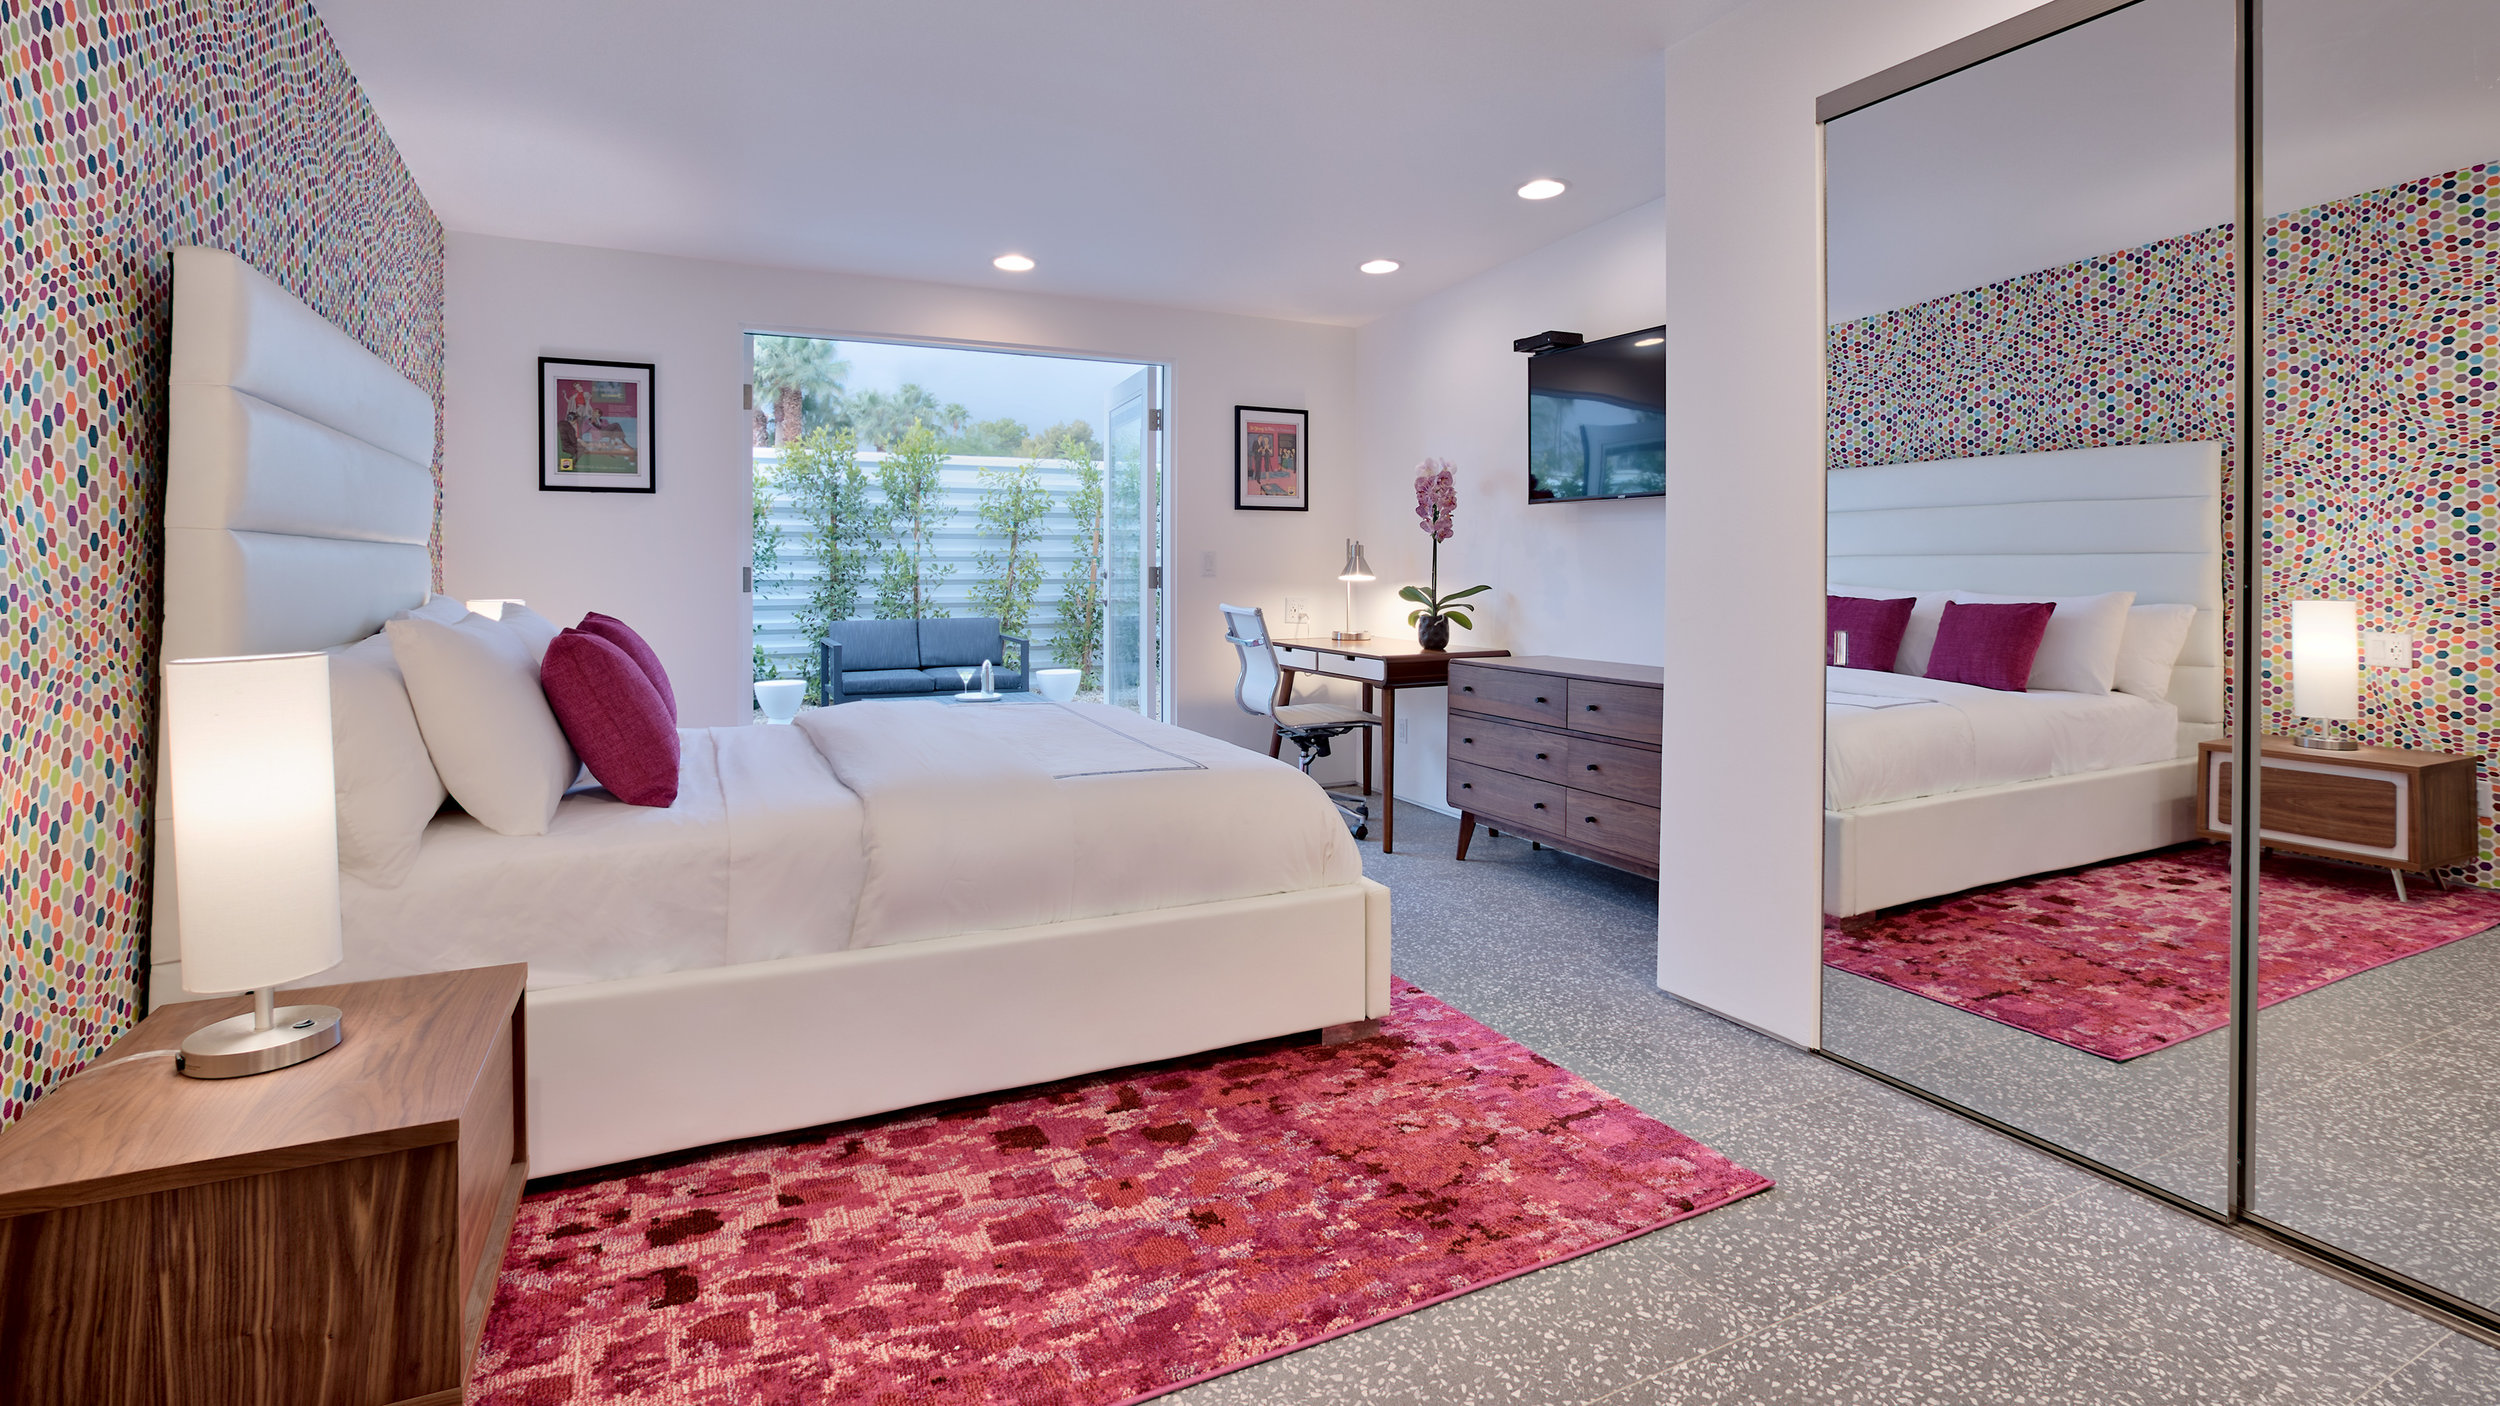 Bedroom #2: The Pink room- Queen size bed, en-suite bathroom, desk, and private outdoor patio.